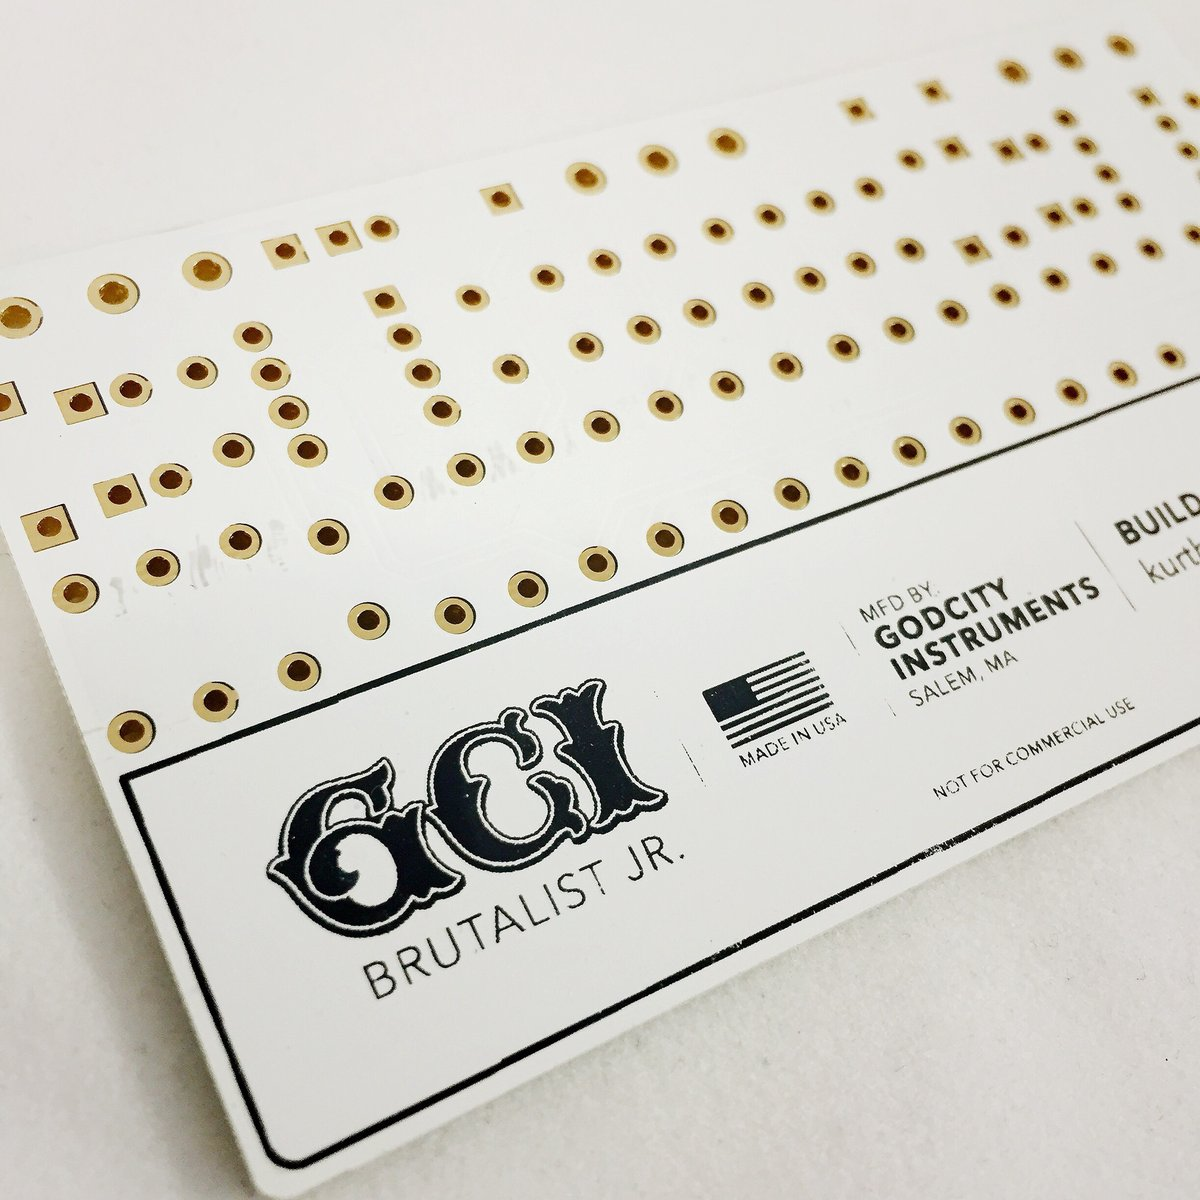 Godcity printed circuit board business card deathwish inc europe godcity printed circuit board business card colourmoves